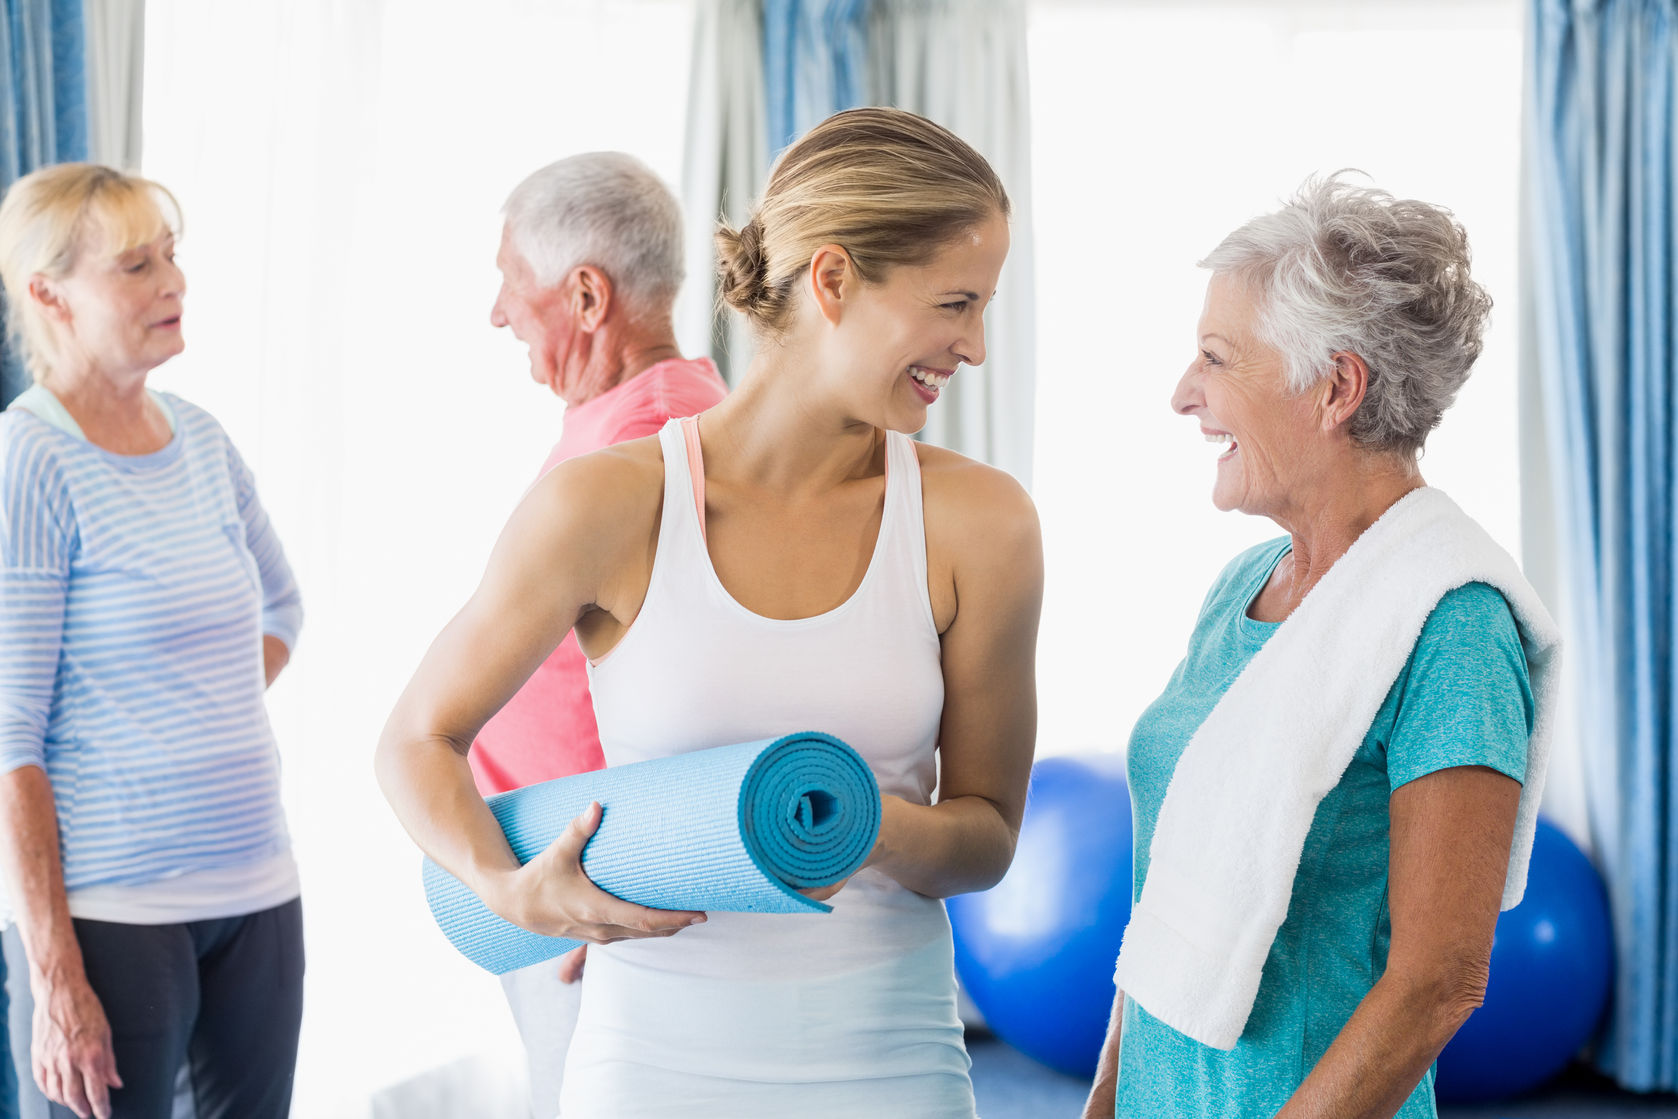 58320915 - instructor standing together with seniors during sports class